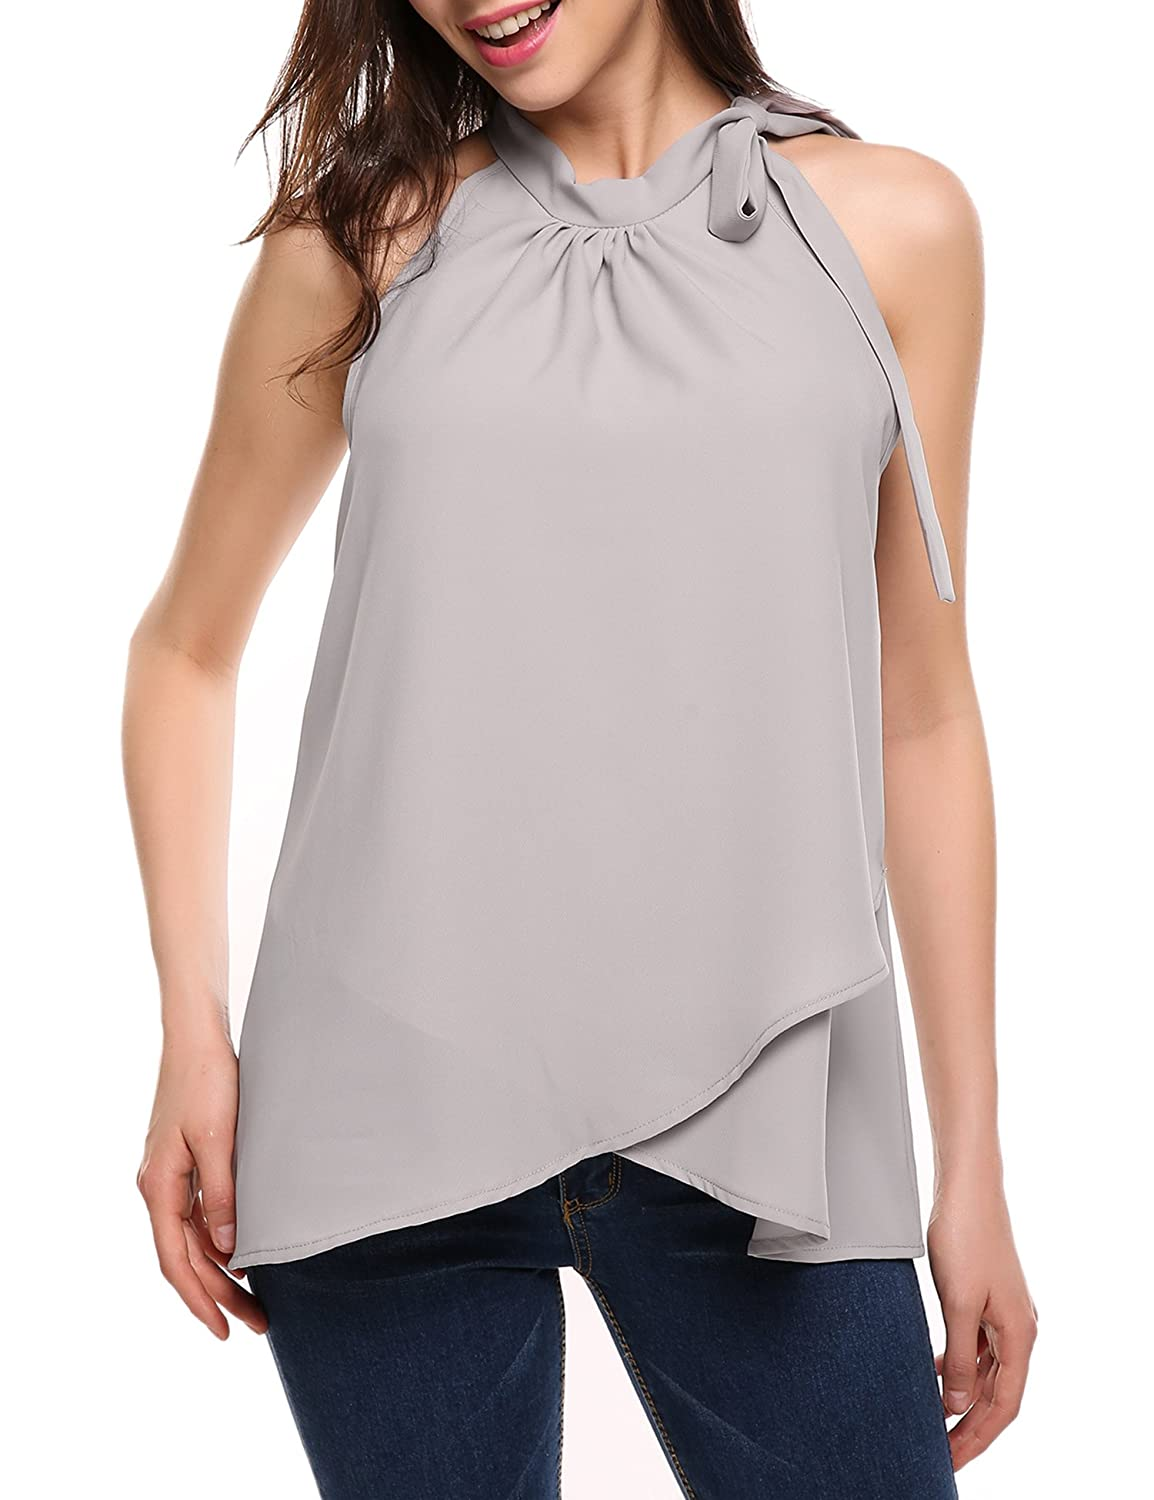 ac5dafe0fd6407 ACEVOG Womens Casual Pleated Sleeveless Chiffon Layered Halter Neck Office Ladies  Shirt Blouse Tops at Amazon Women s Clothing store